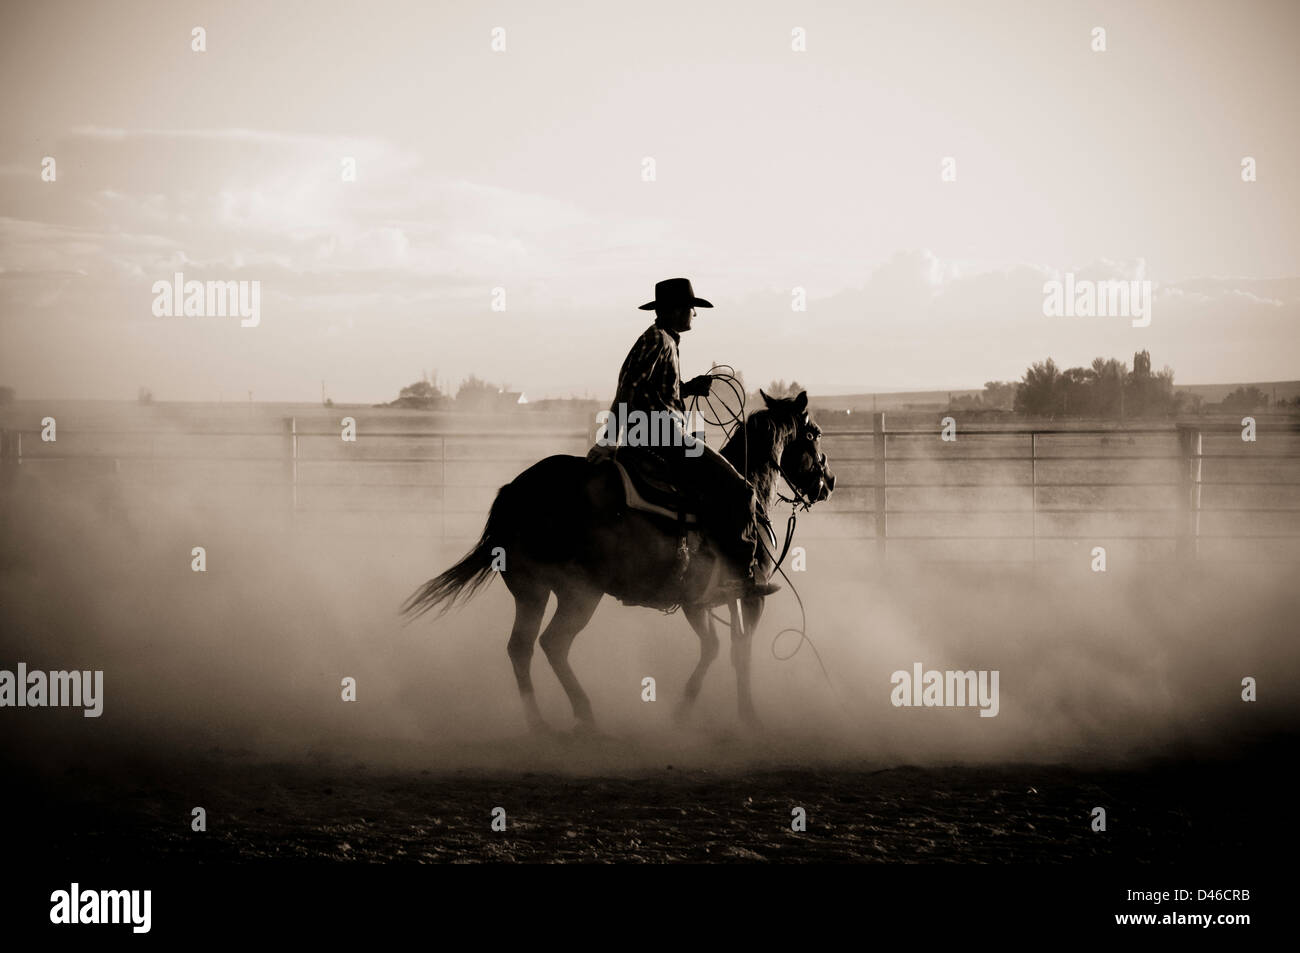 Cowboy riding horse in dusty arena. Black and White. Twin Falls, Idaho. - Stock Image